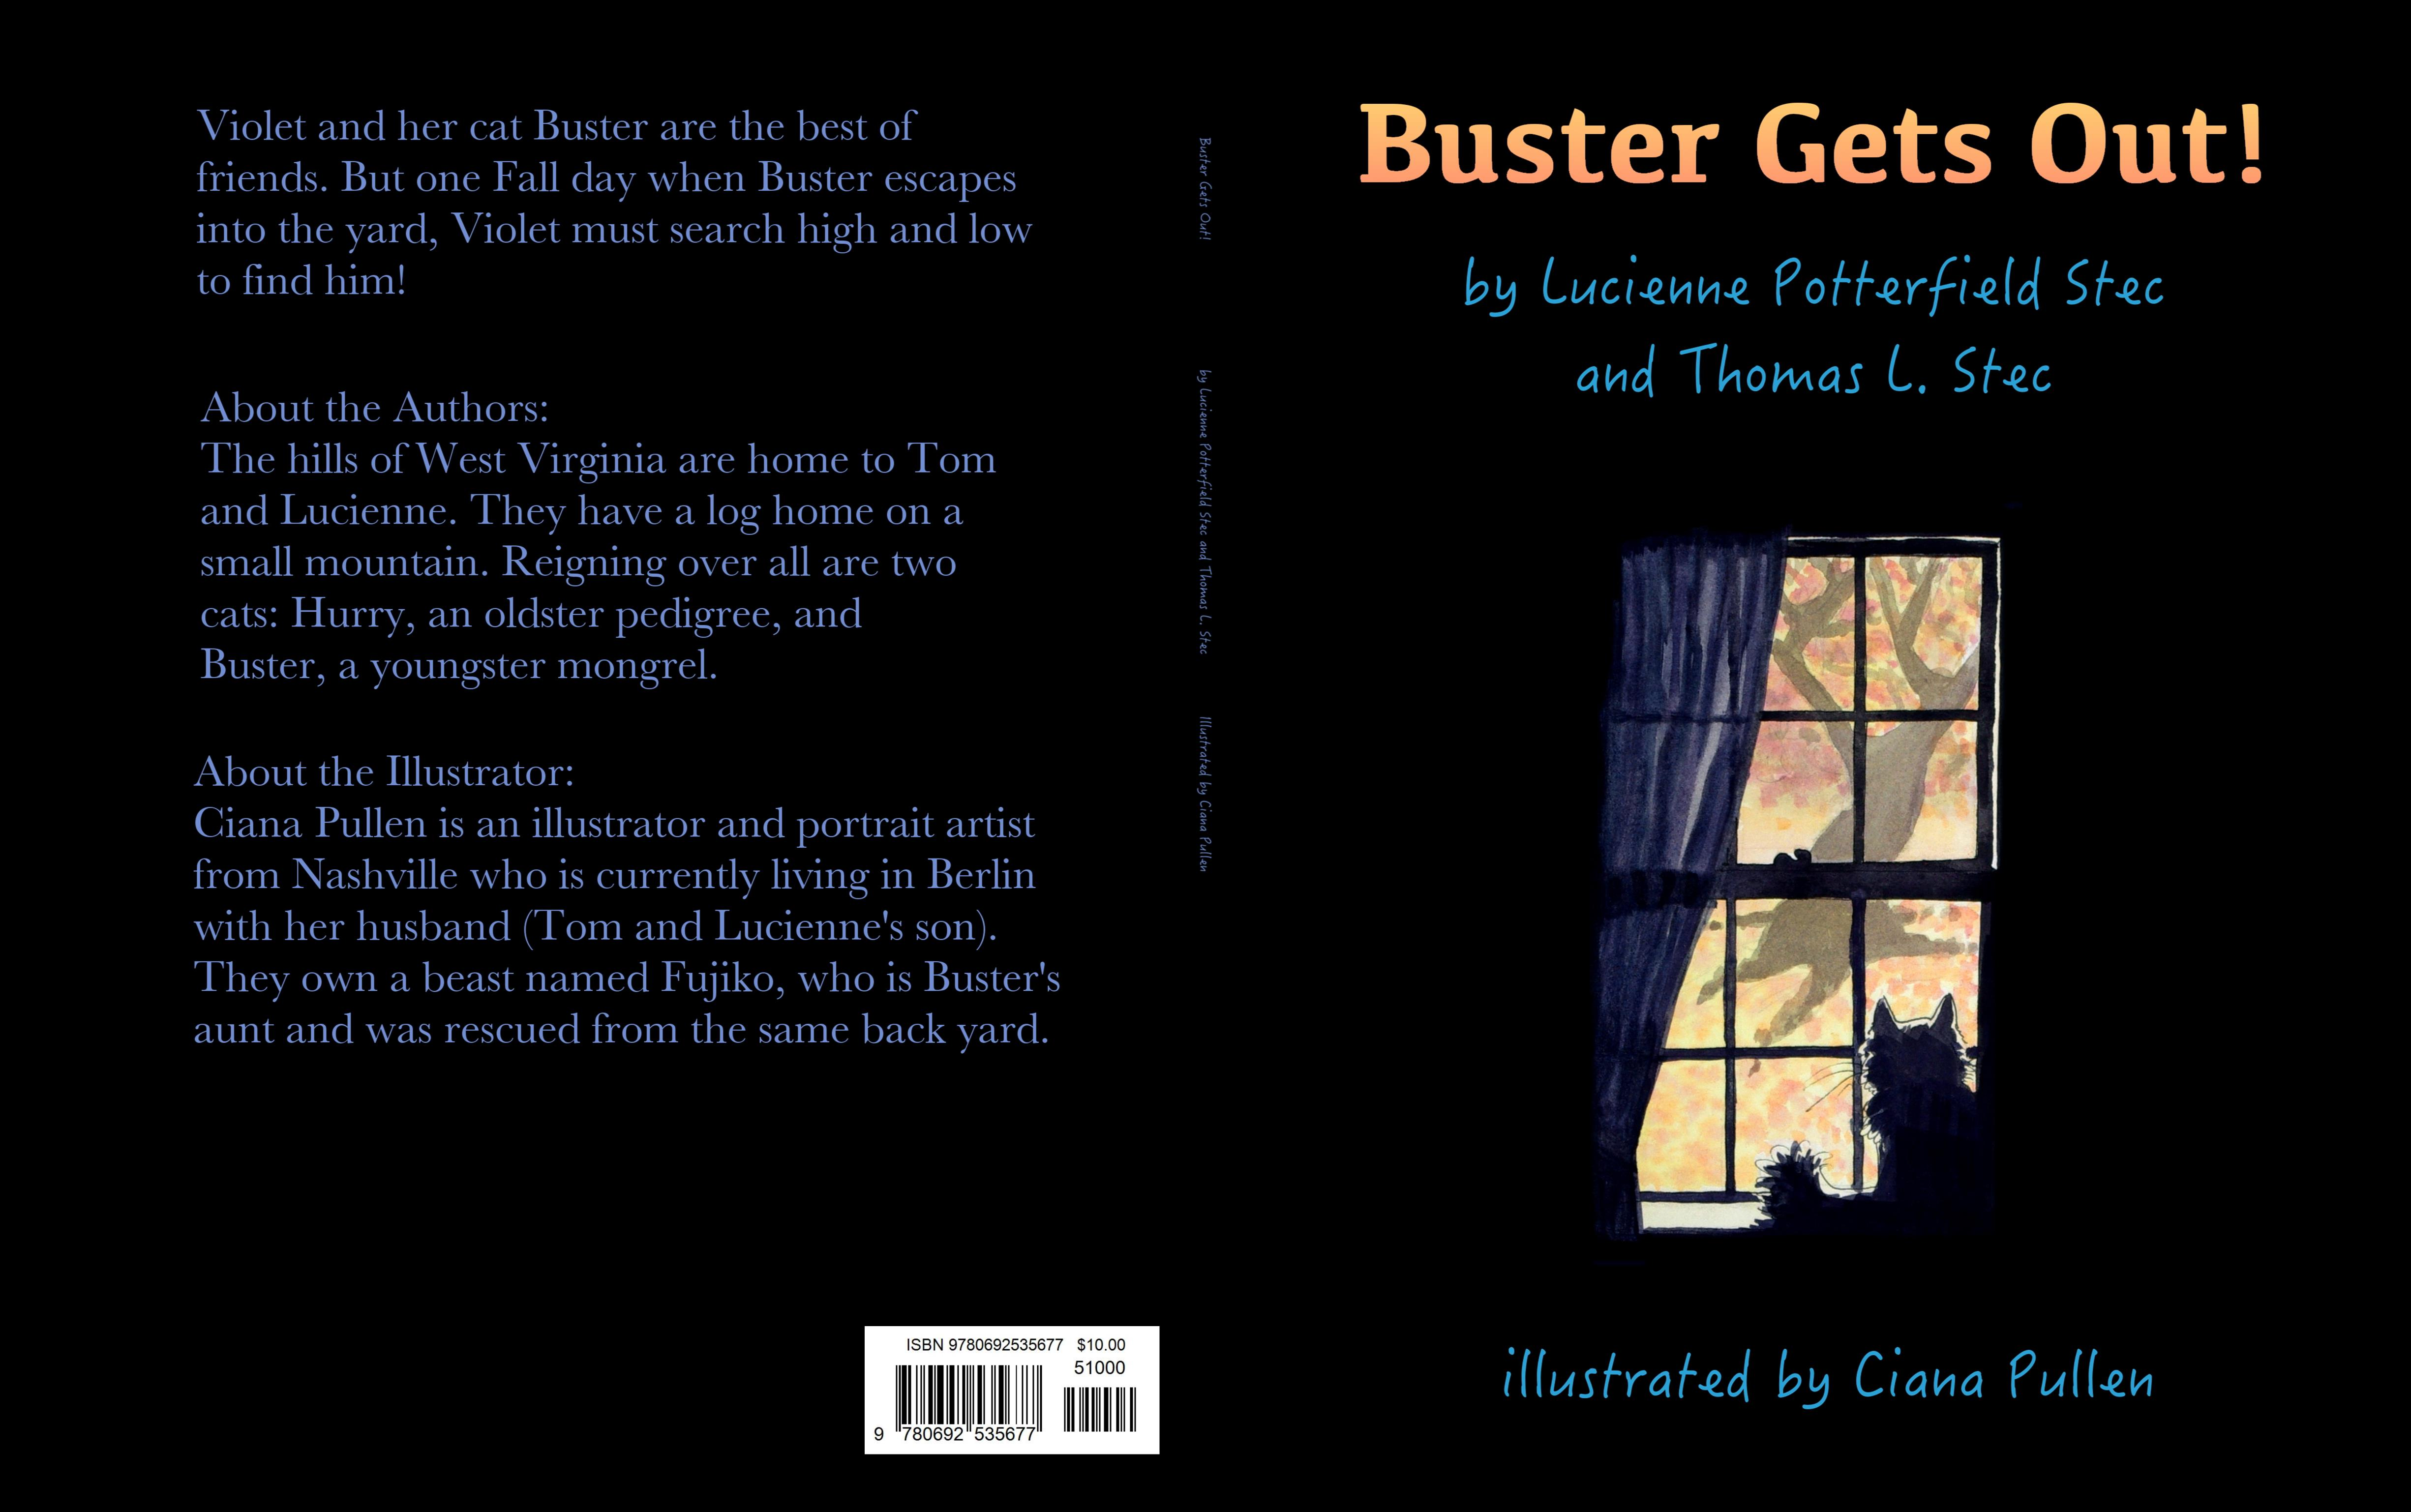 Buster Gets Out! cover image